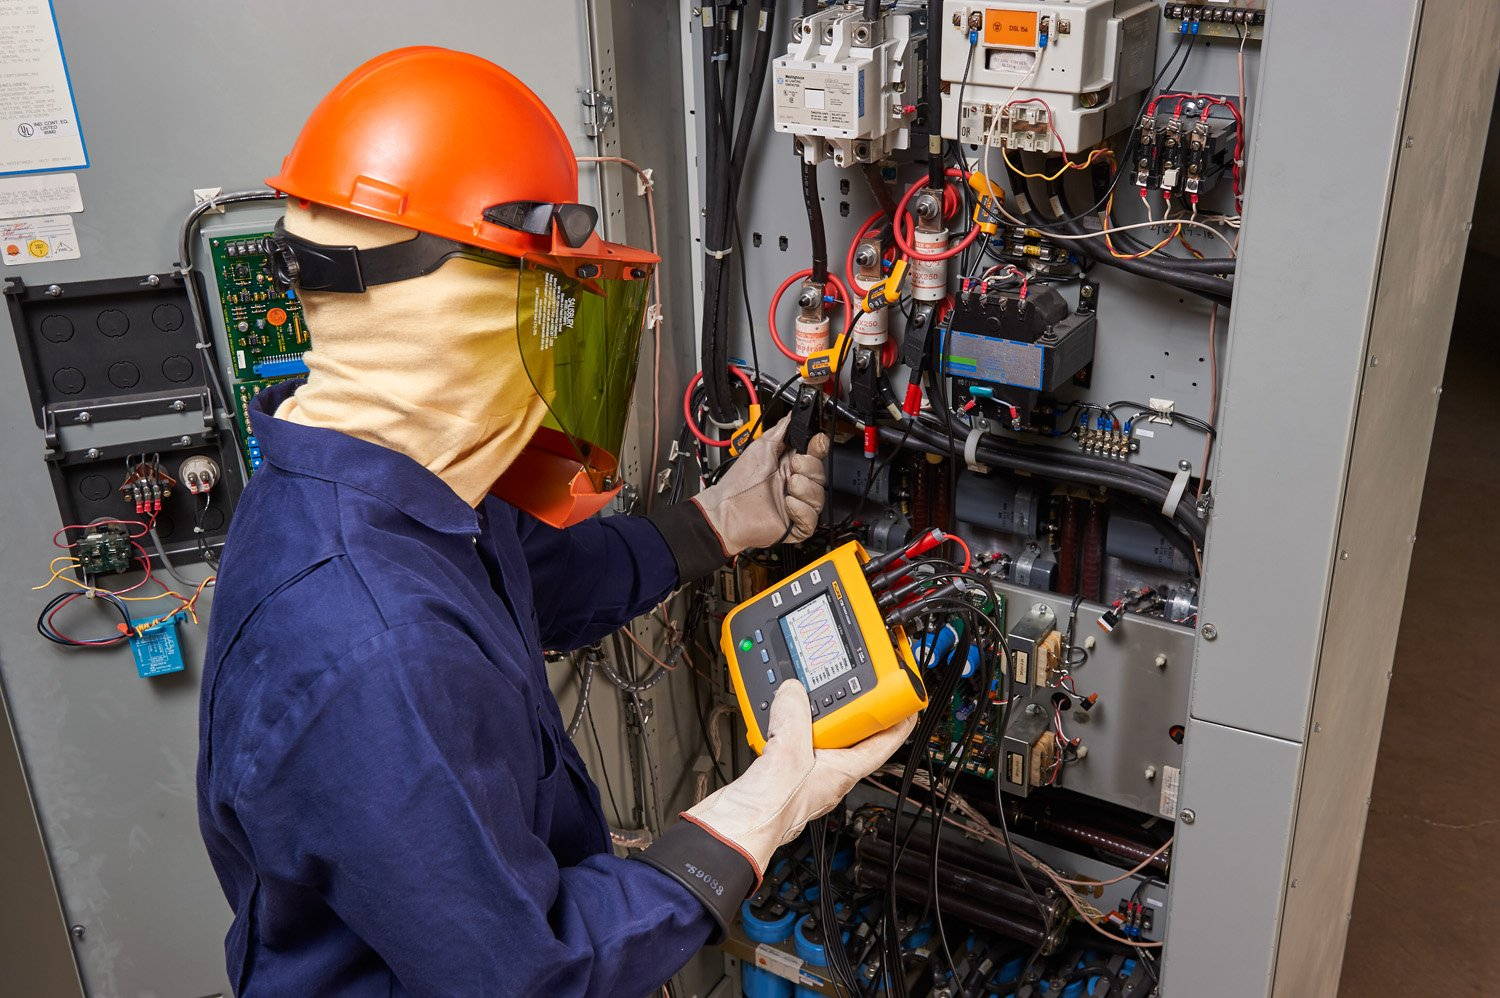 Using a Fluke 1738 Advanced Power Energy Logger to perform an energy study on a mechanical system